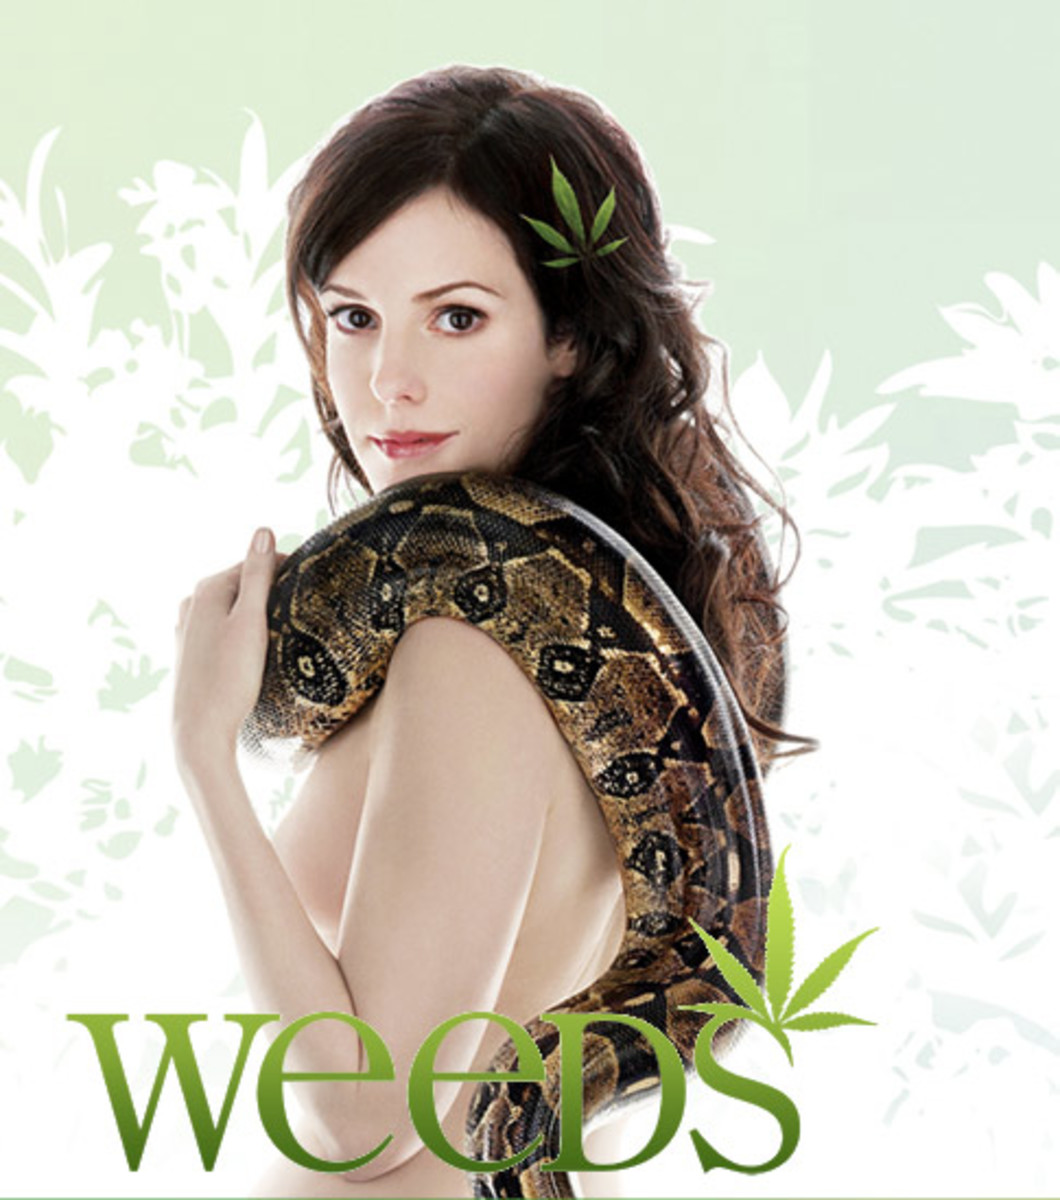 Weeds is a dark comedy-drama series about a widow who starts selling pot in order to support her family.